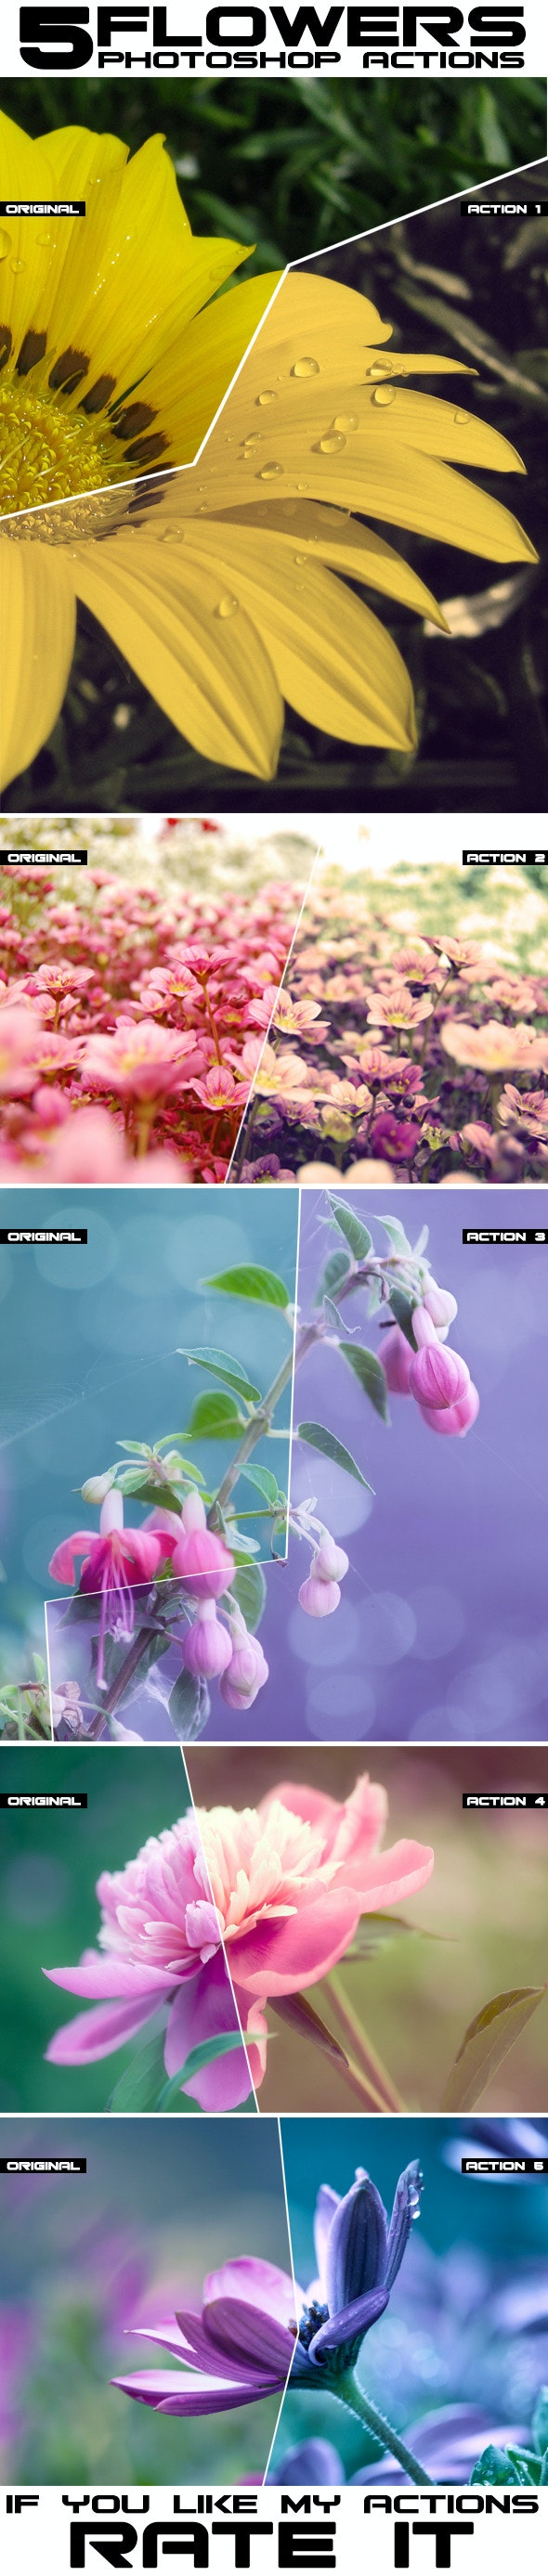 5 Flower Photoshop Actions - Photo Effects Actions